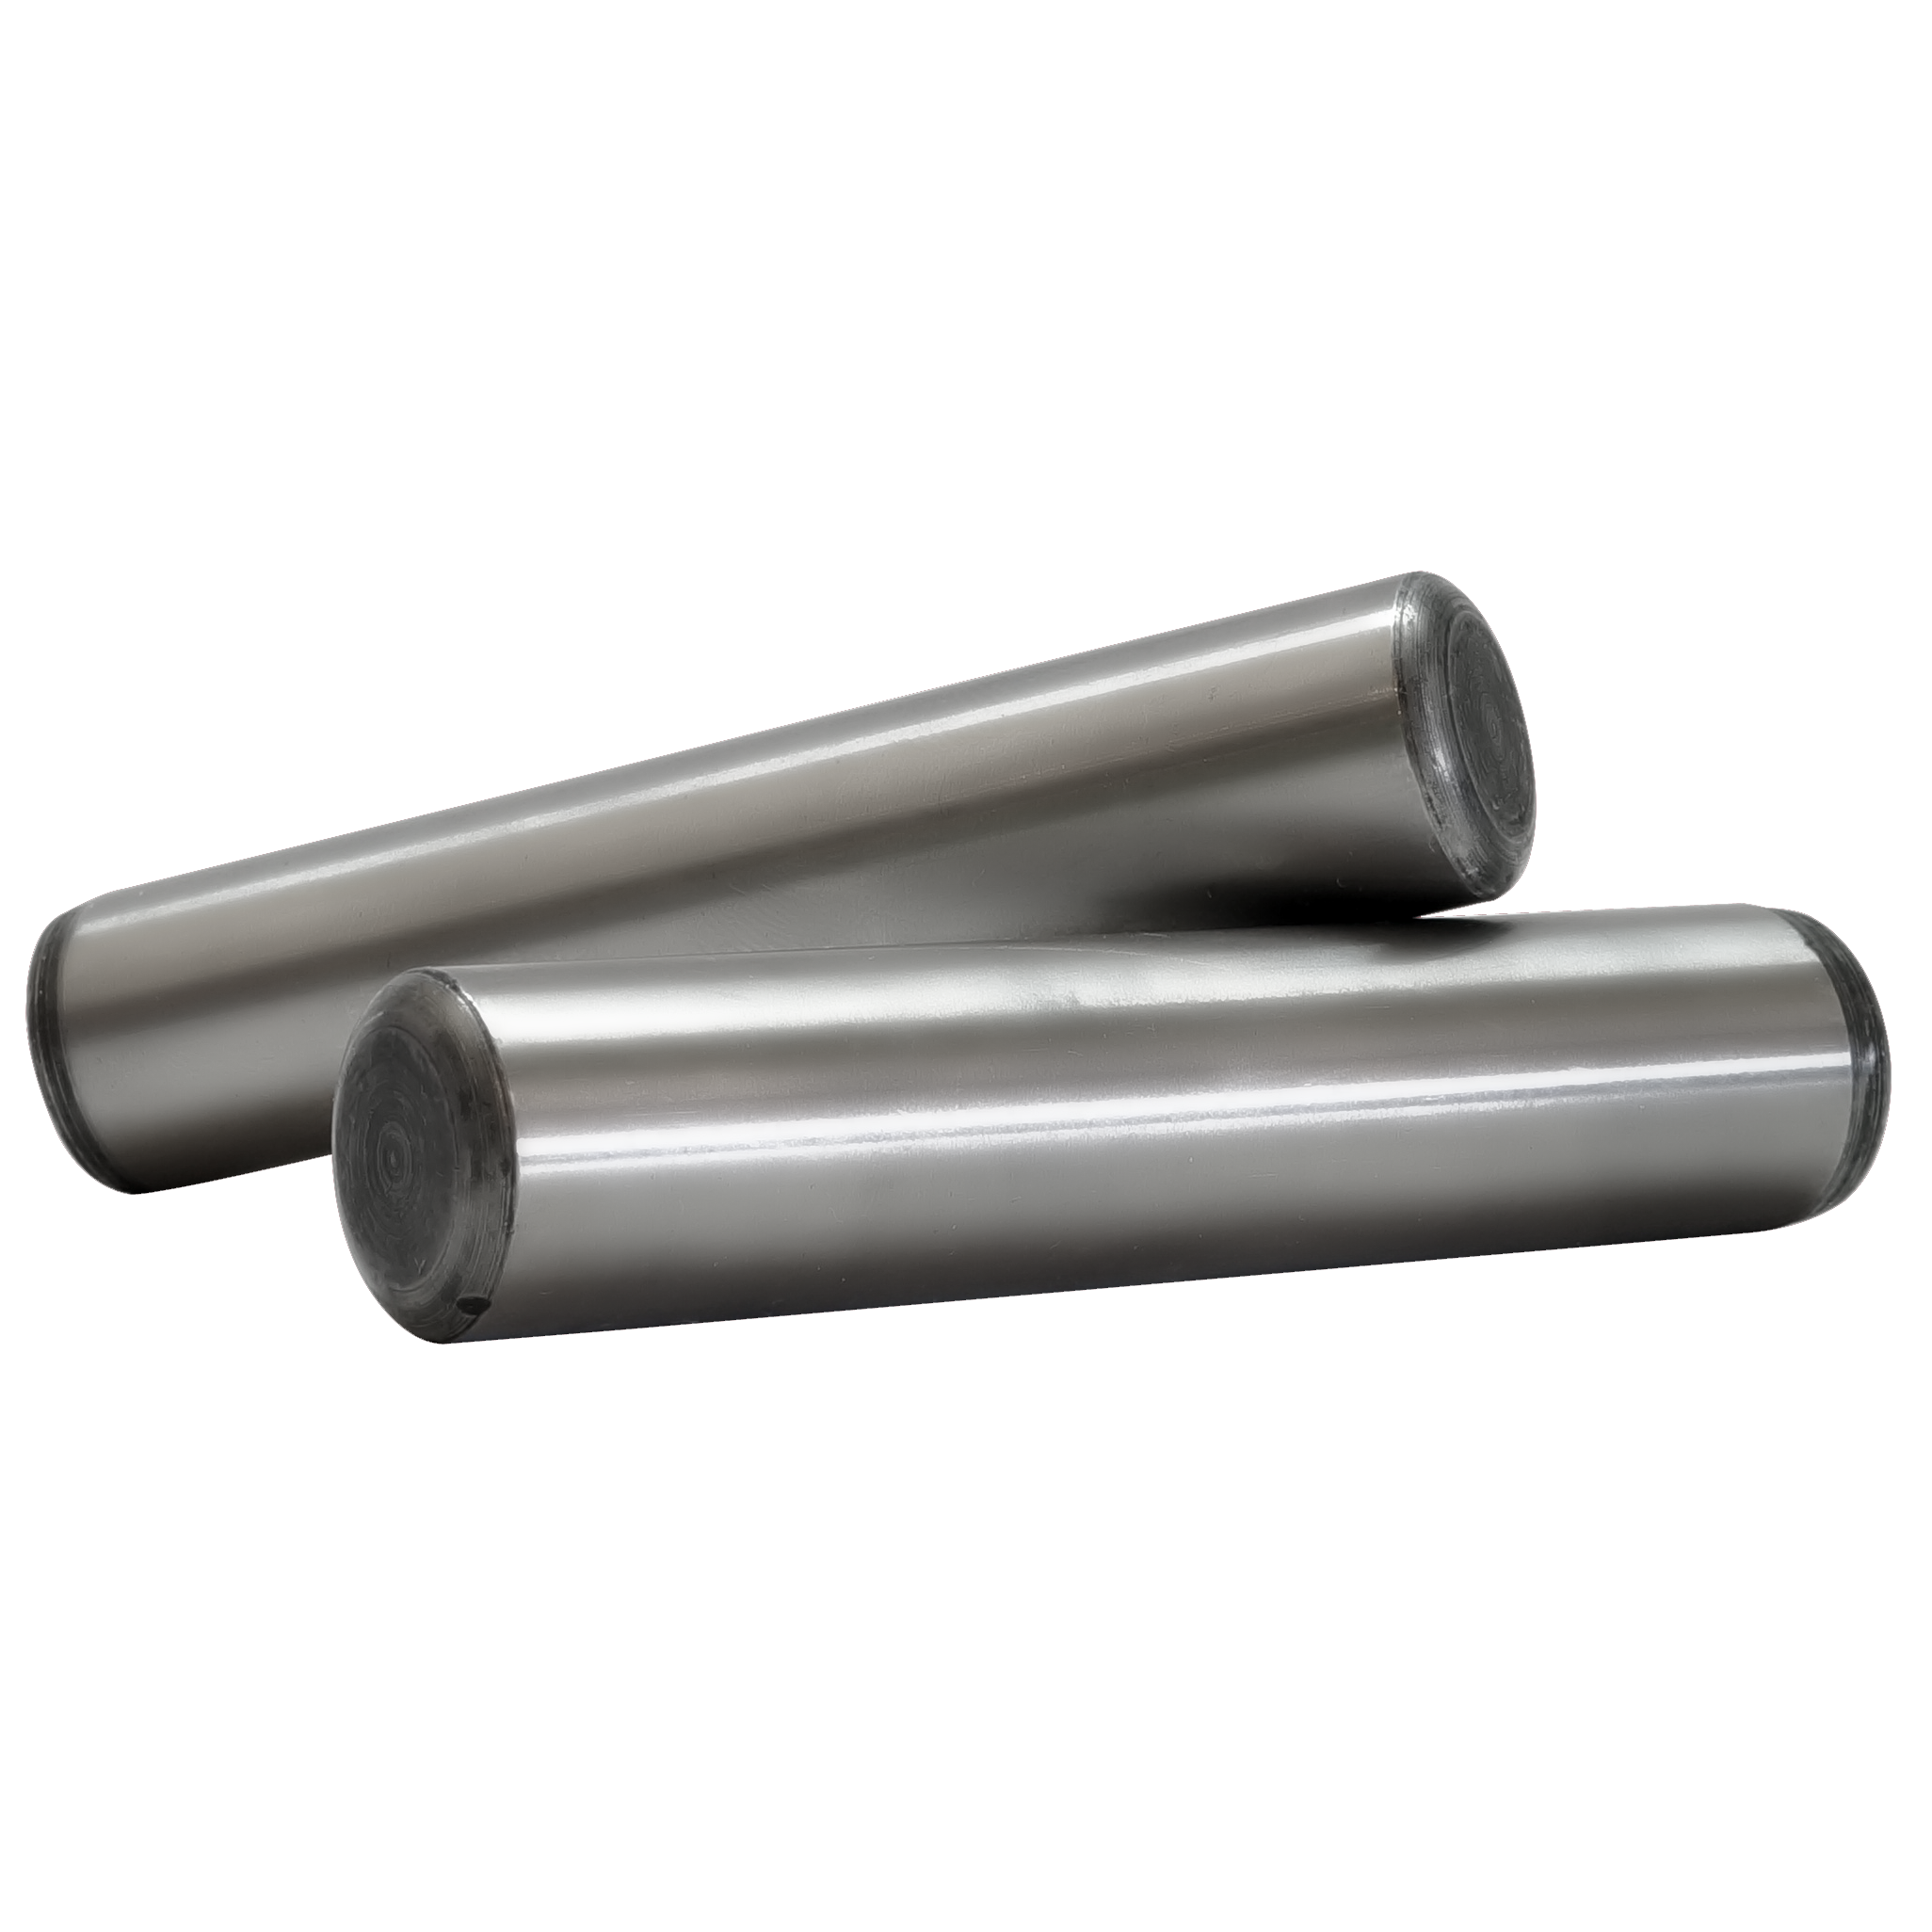 "M2x10 DIN 6325 Alloy Steel Dowel Pin Hardened Ground 0.0002"" Over Sized  (Unbrako)"